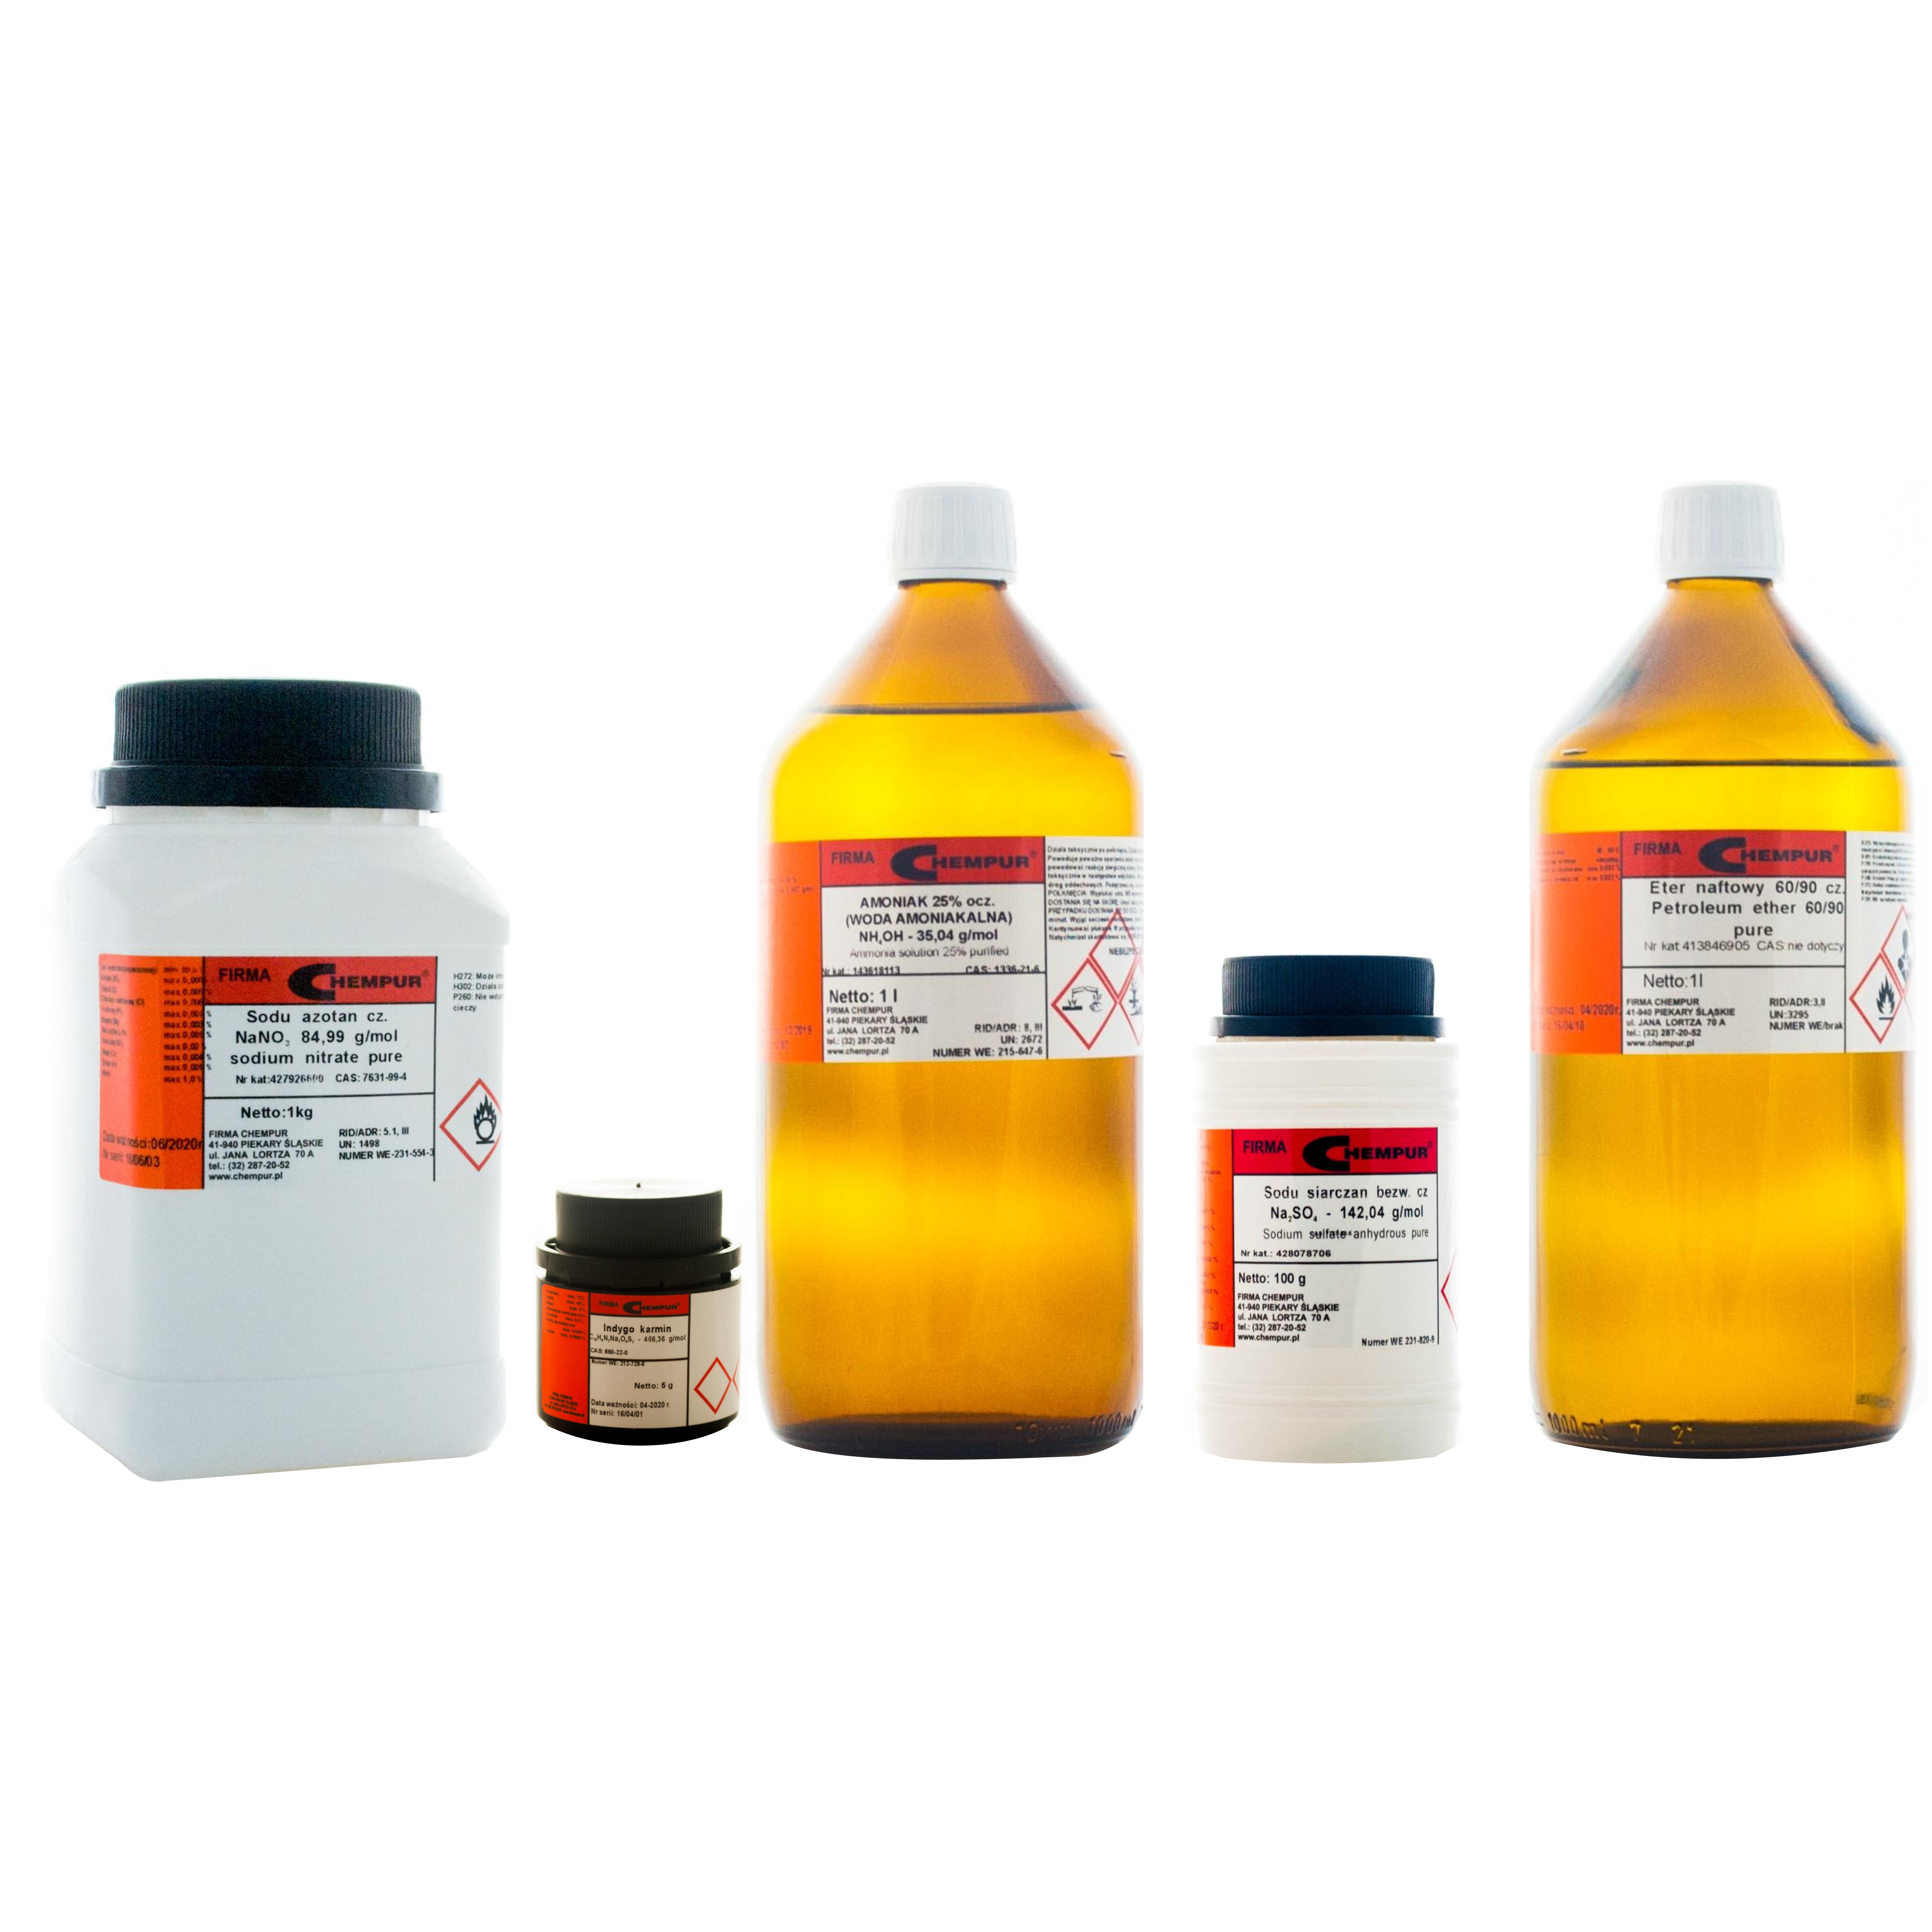 HYDROCHLORIC ACID SOLUTION 30-33%